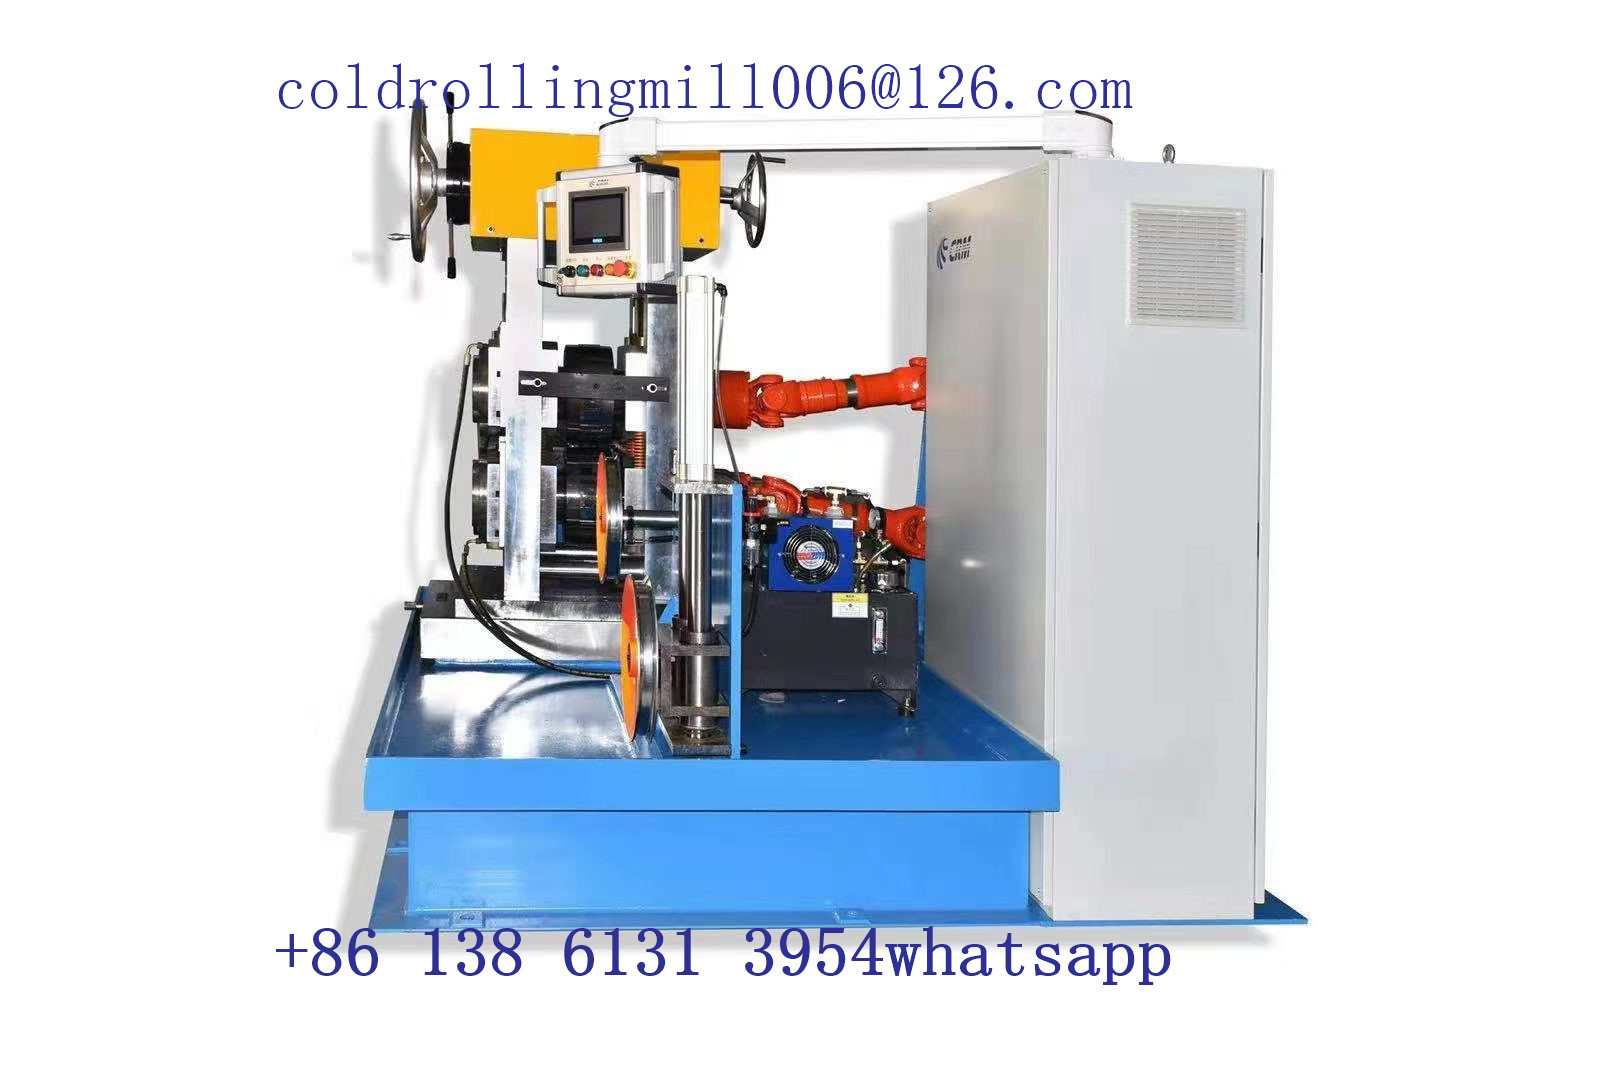 Gz300 2 Hi Cold Rolling Mill For Flat And Shaped Wires